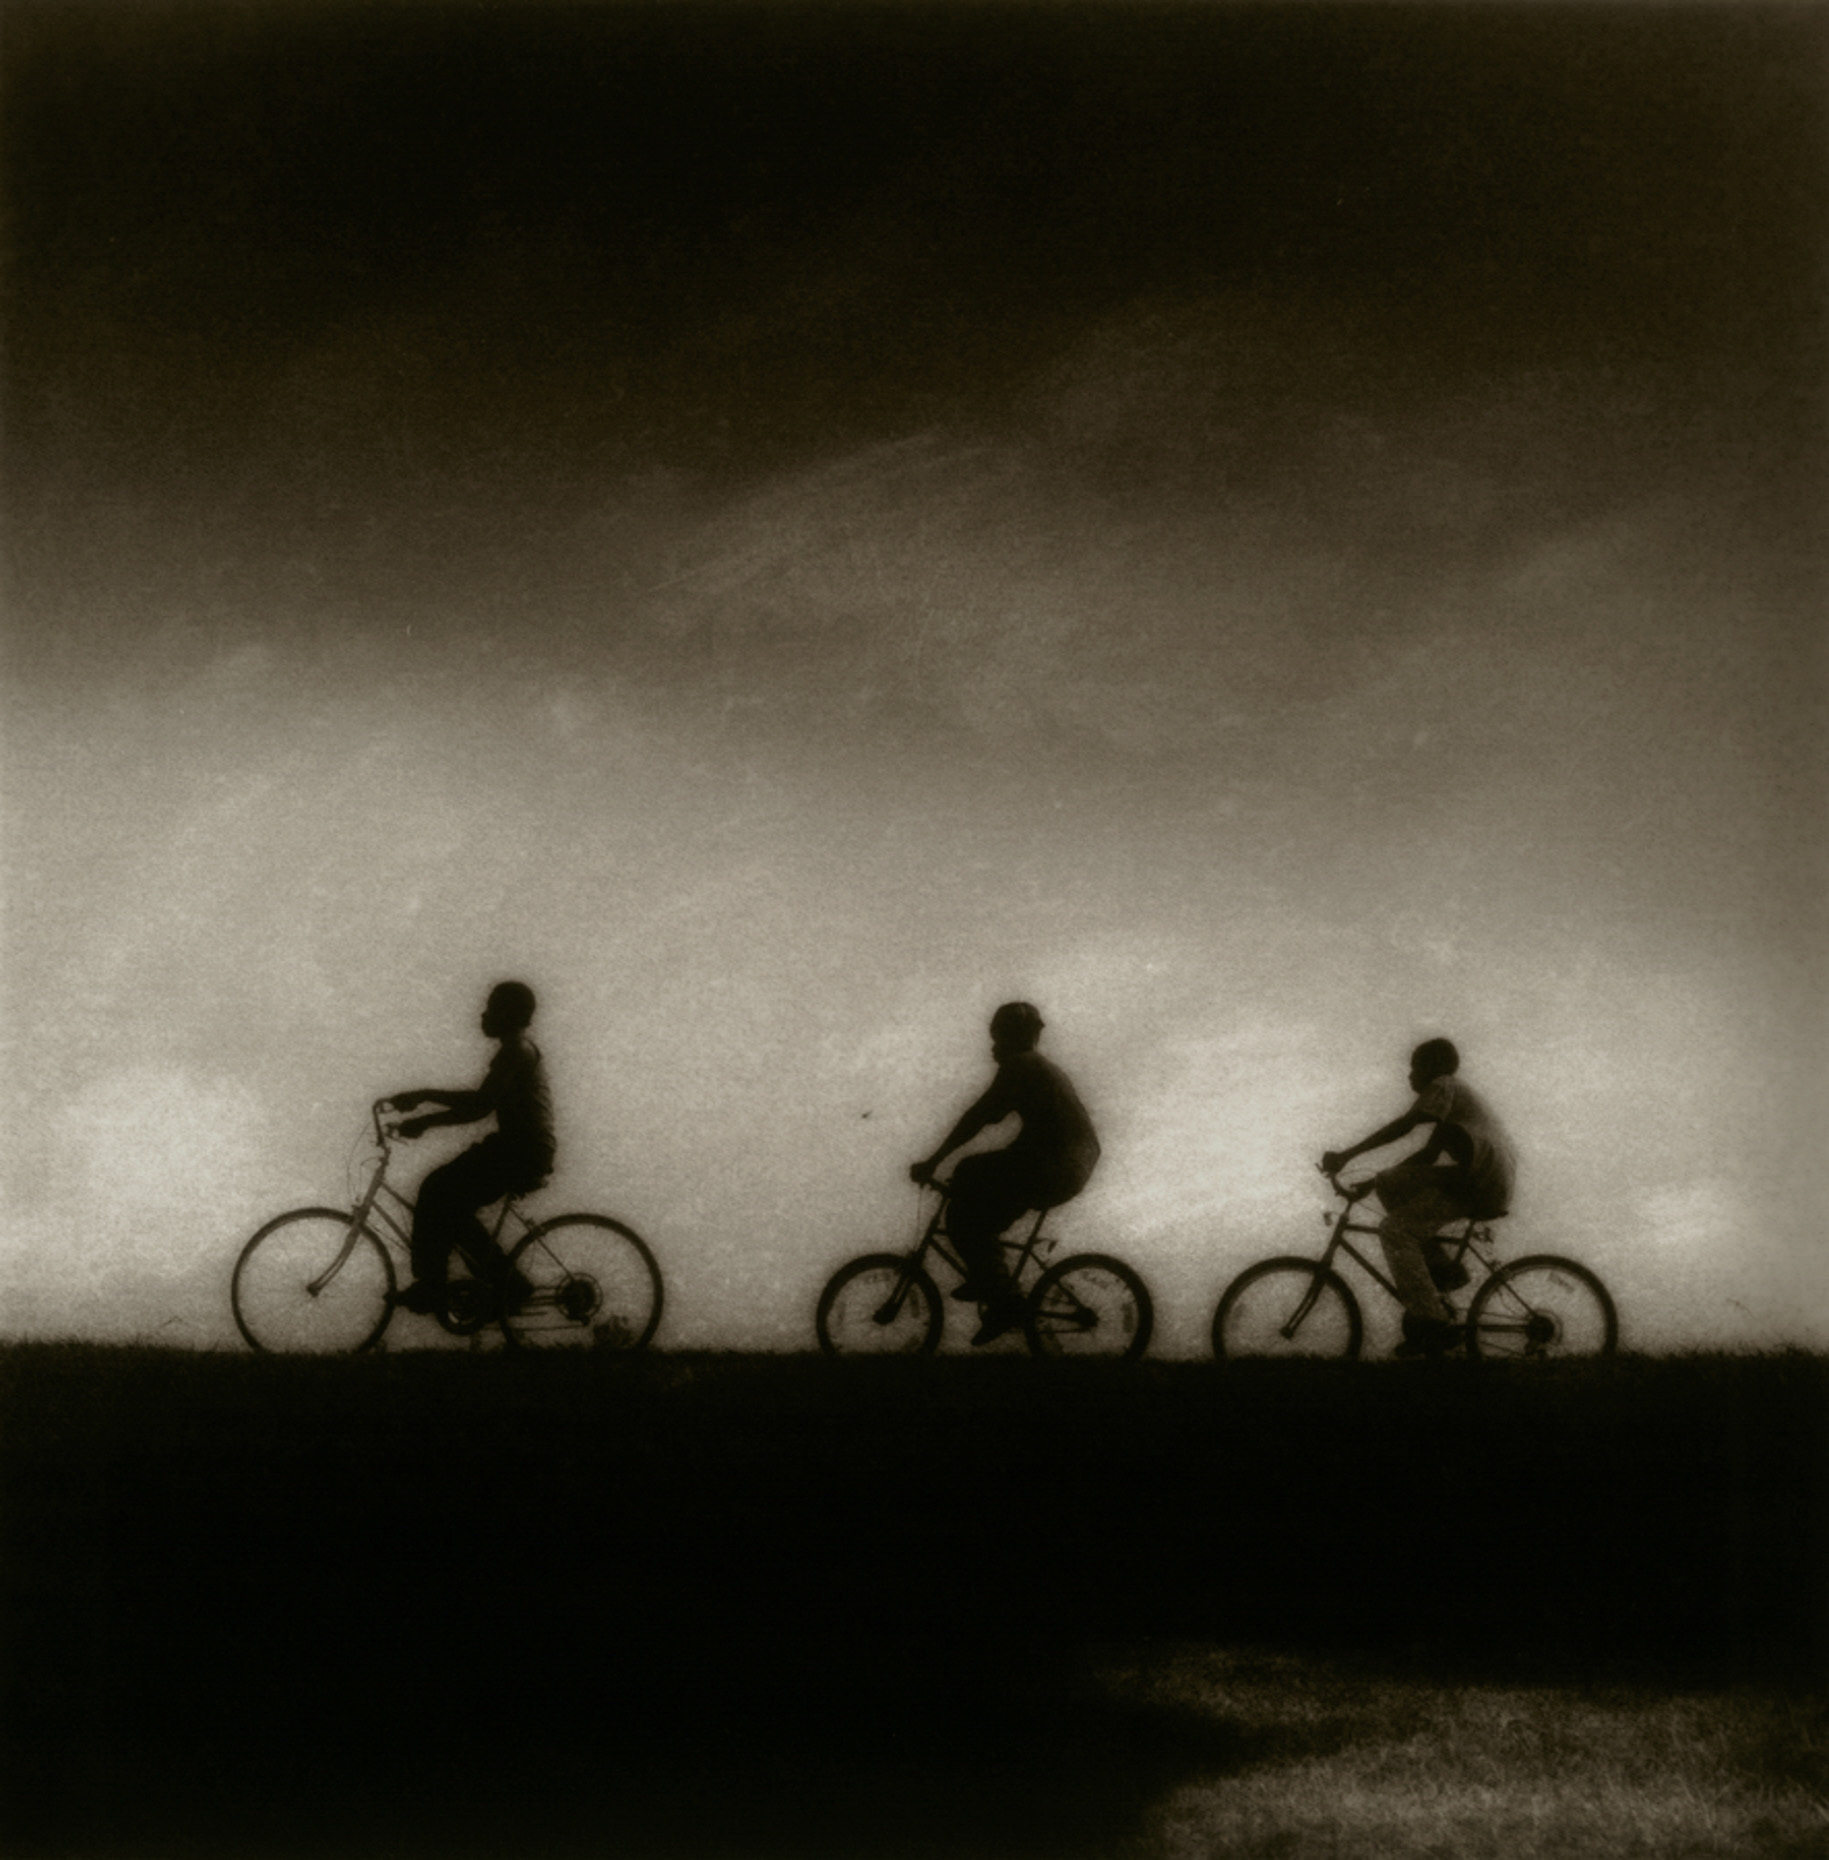 Bicyclers